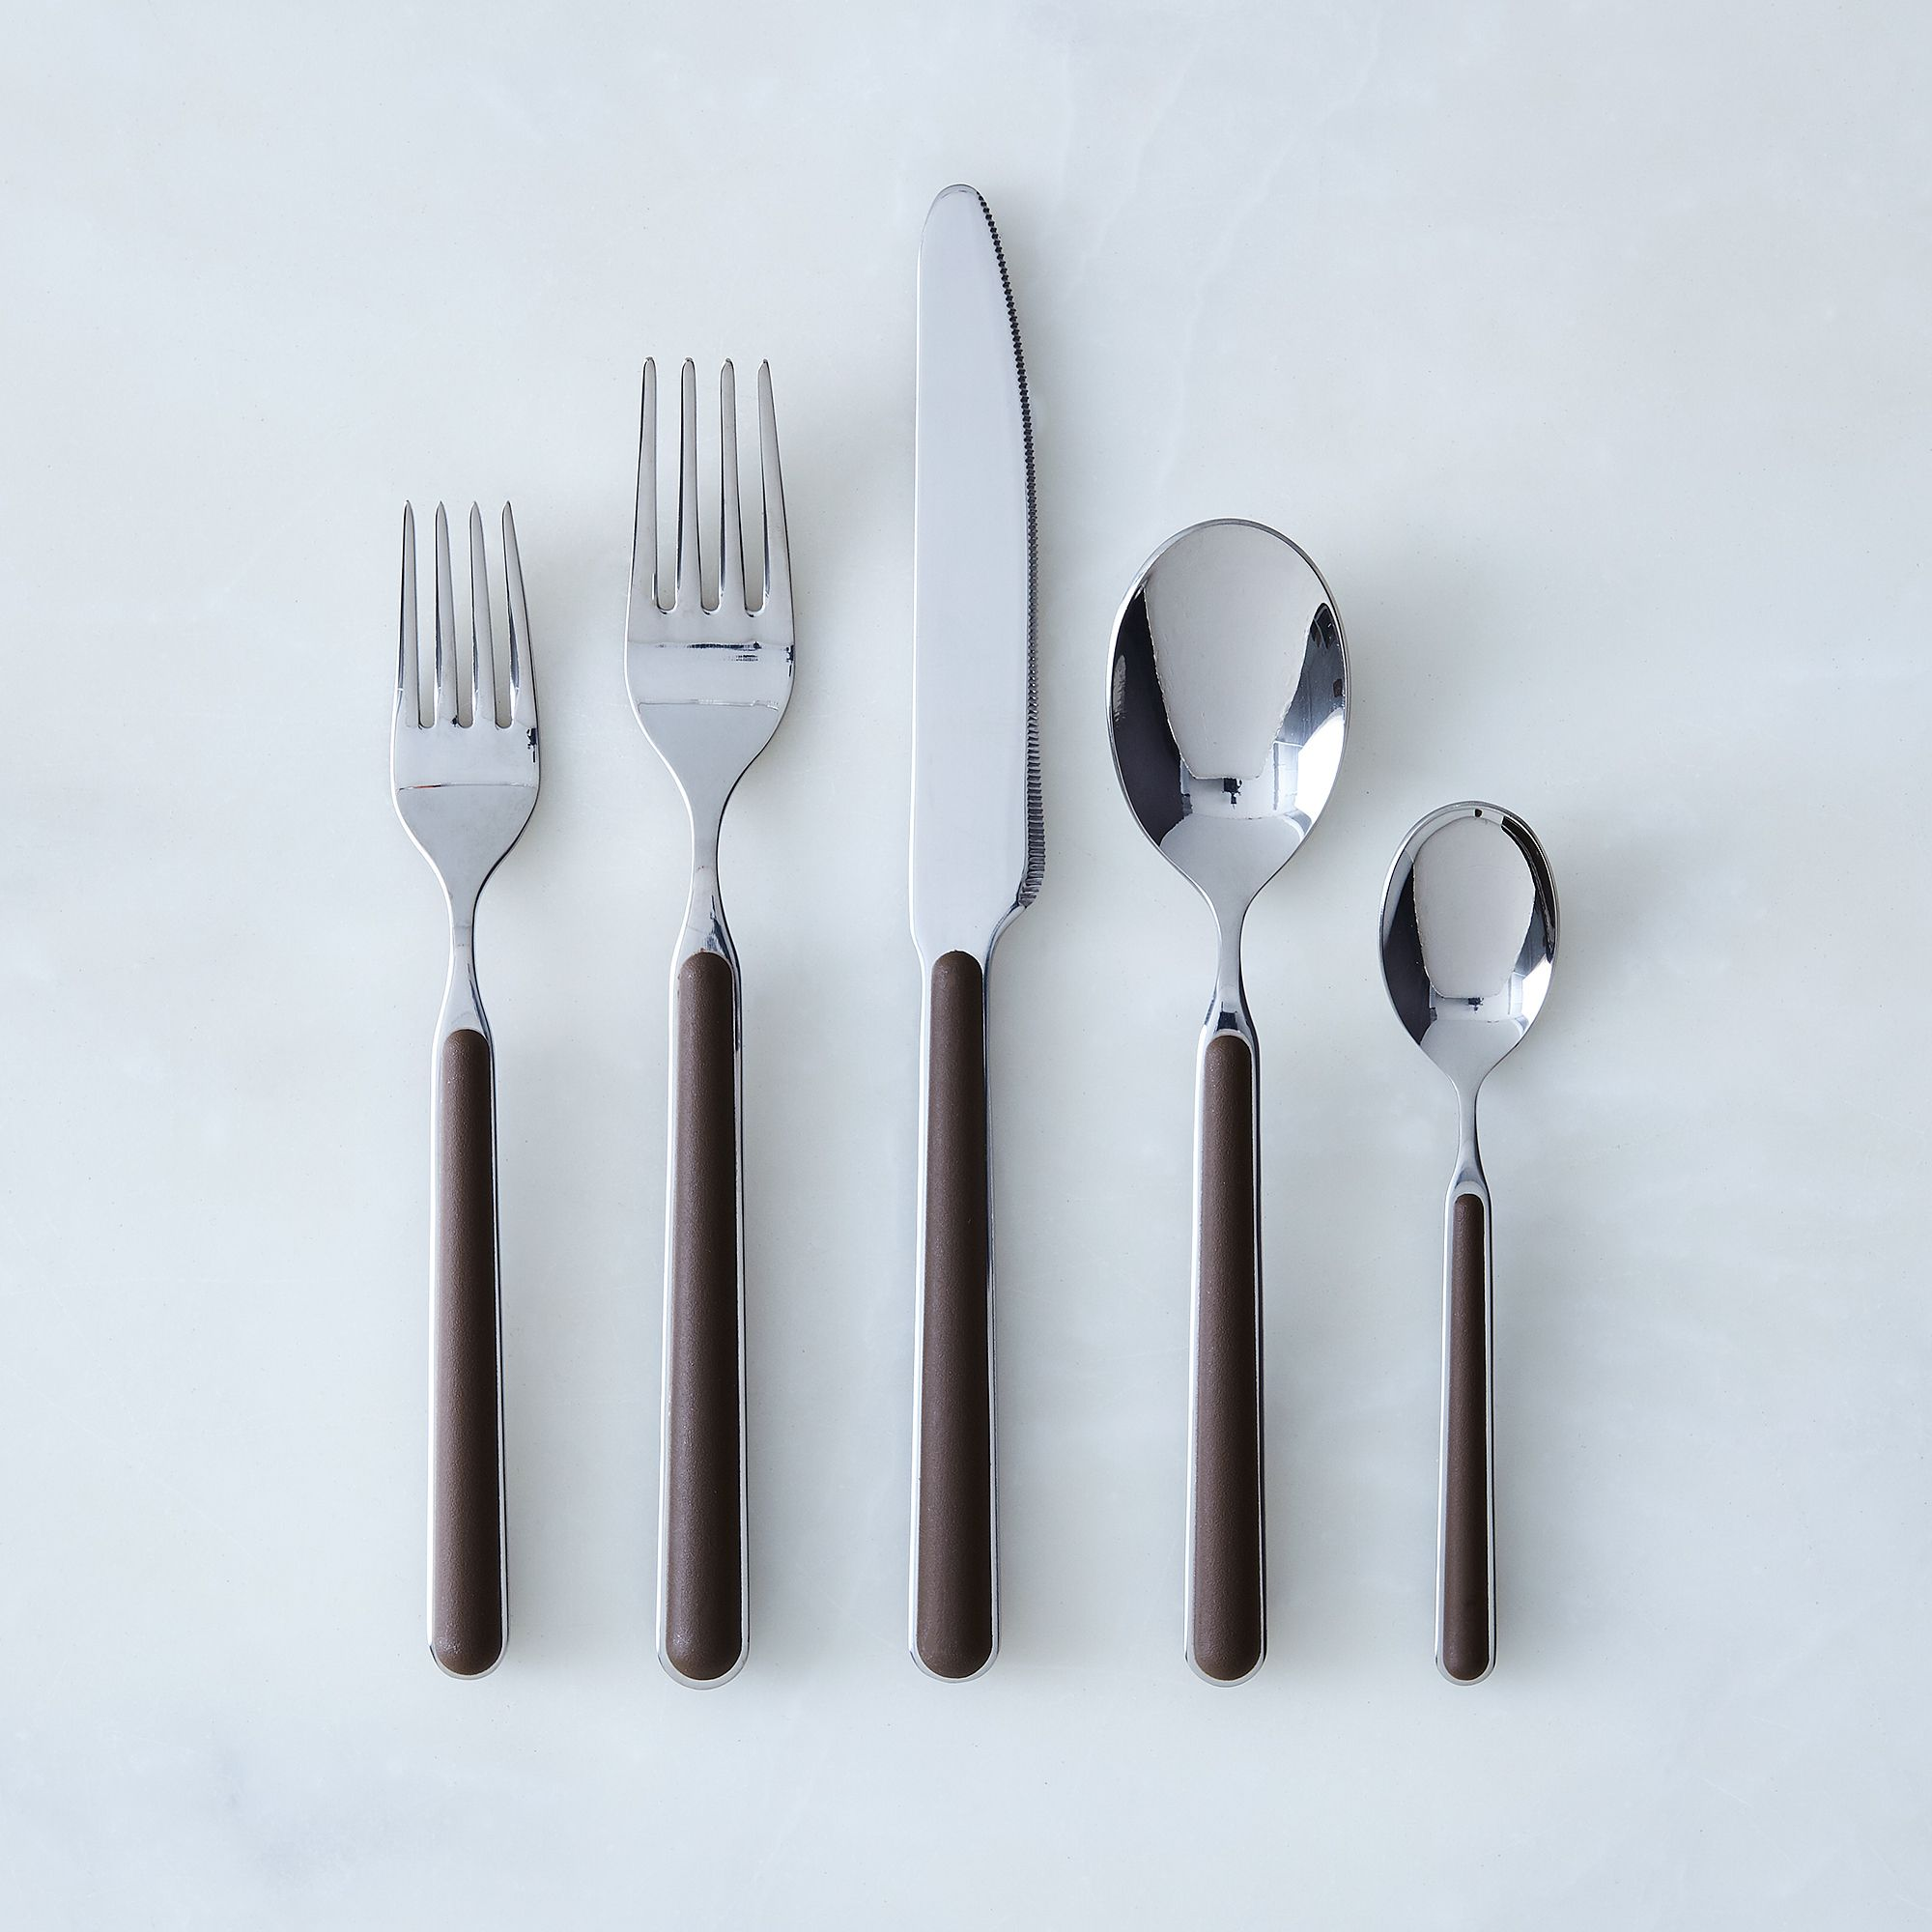 Italian Flatware, Fantasia (5-piece Flatware Place Setting) Brown